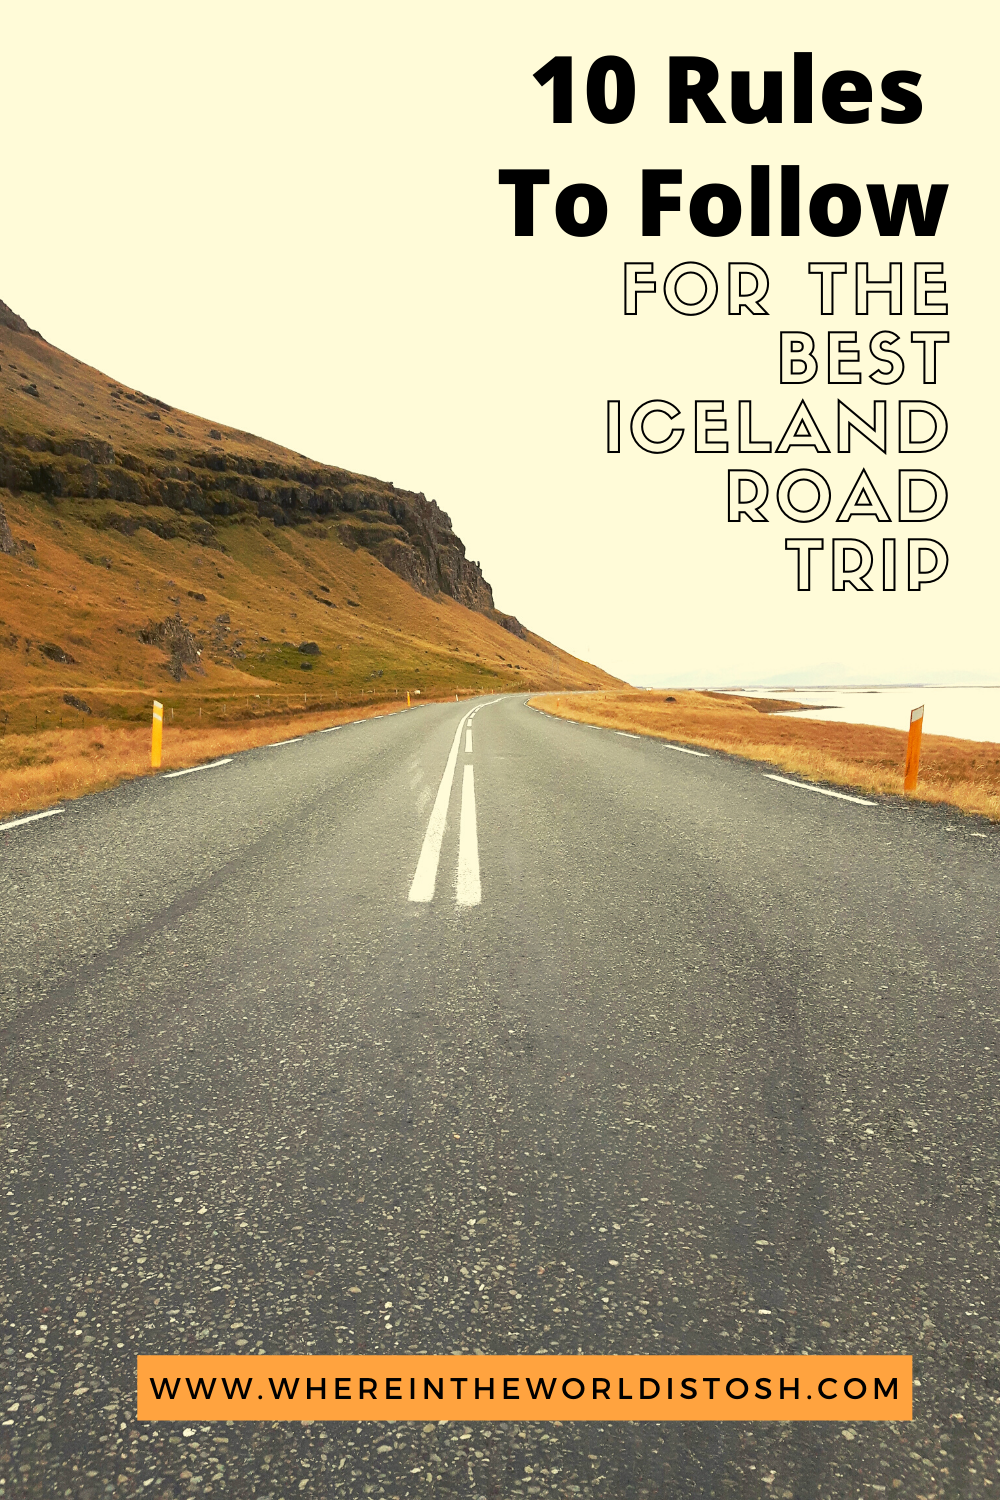 10 Rules To Follow For The Best Iceland Roadtrip